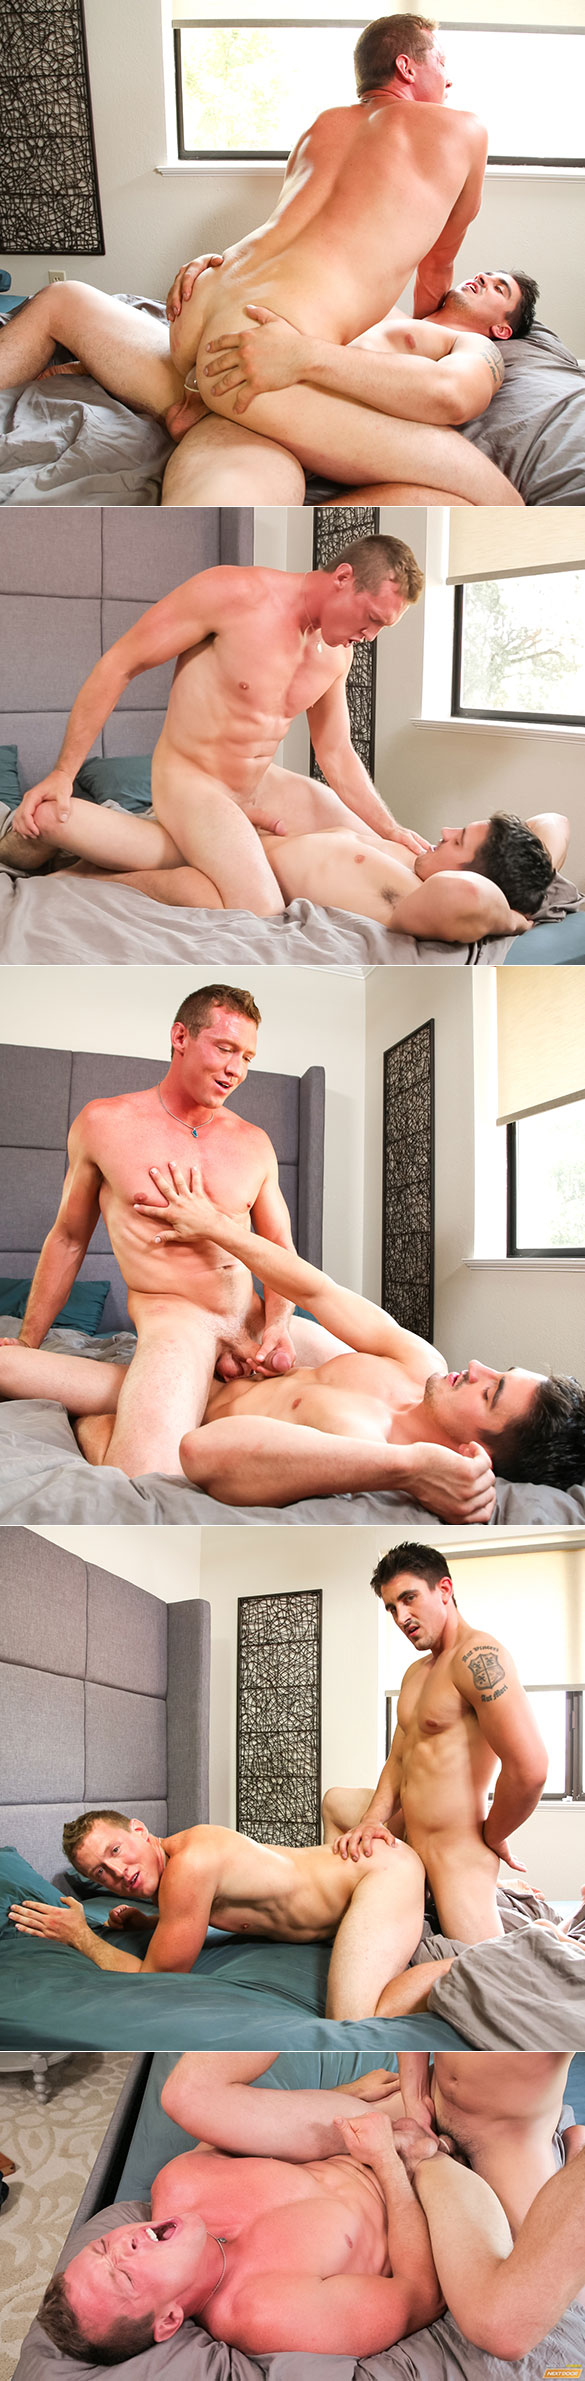 "Next Door Studios: Derrick Dime fucks Pierce Hartman in ""The Reunion: Arousing Faith"""